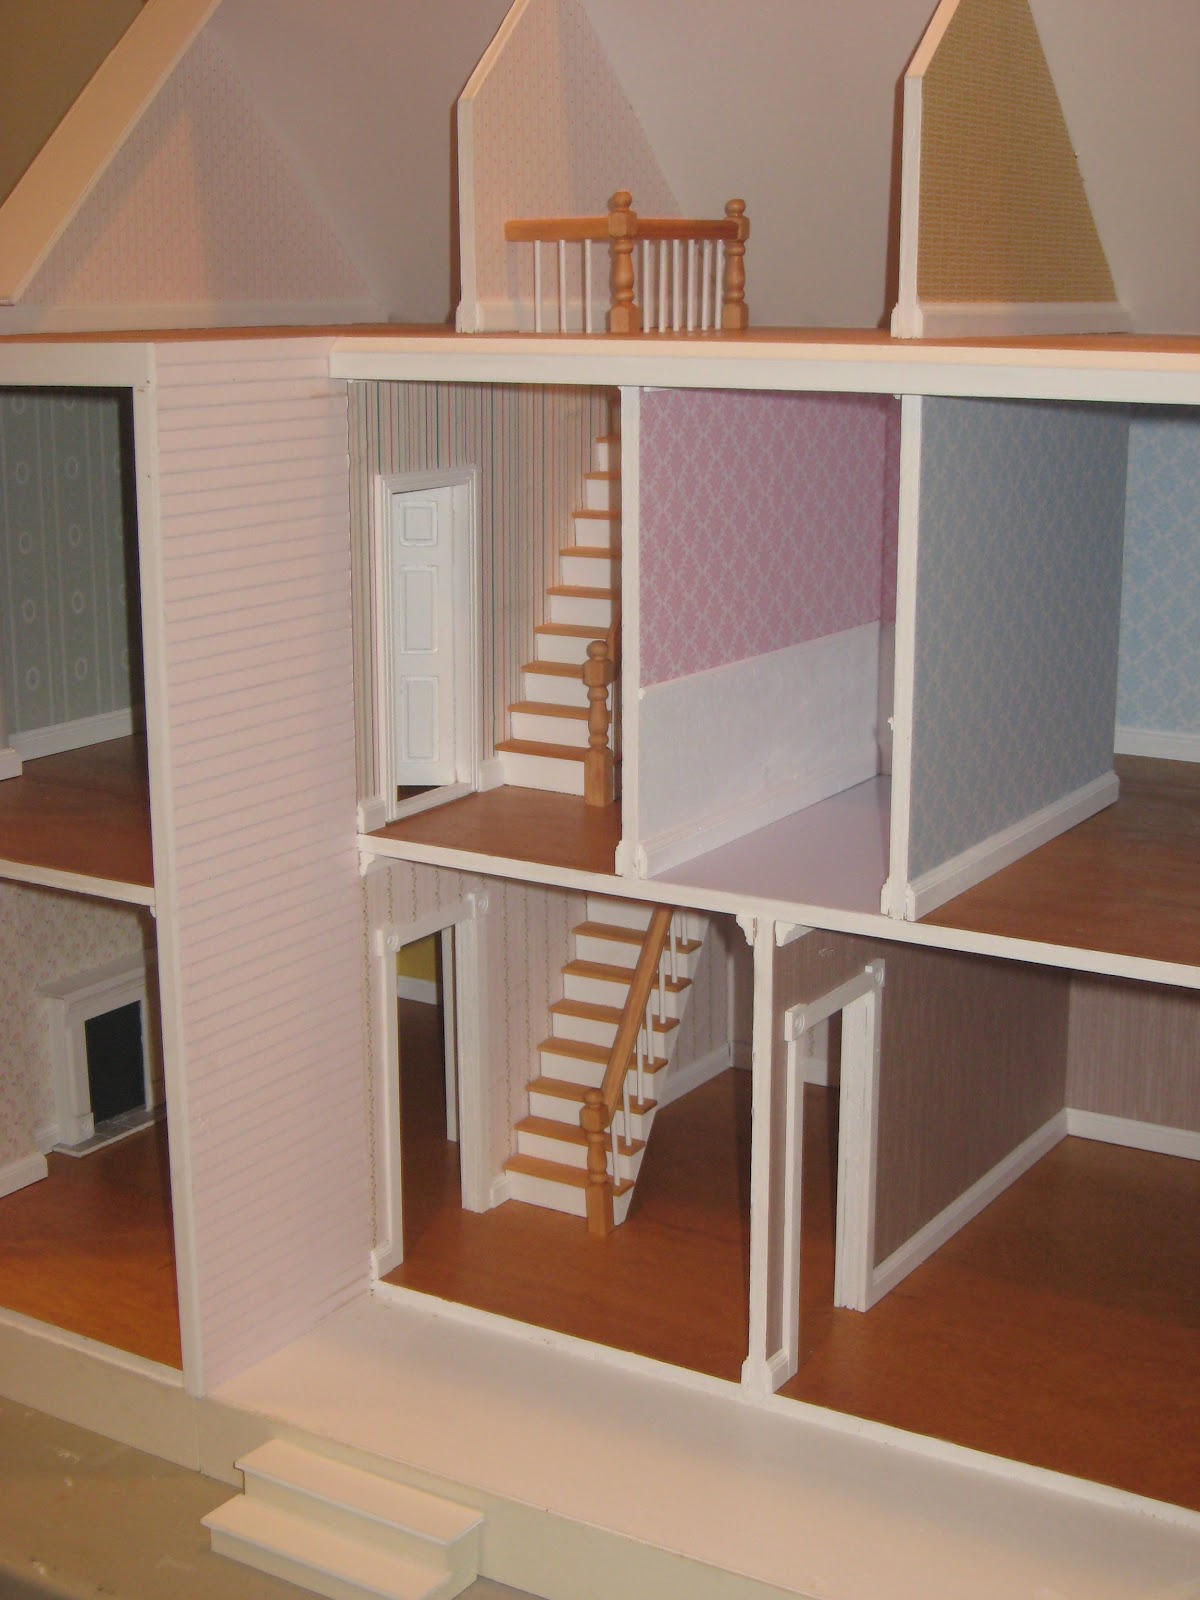 Little Darlings Dollhouses Completed Finished And ON SALE NOW